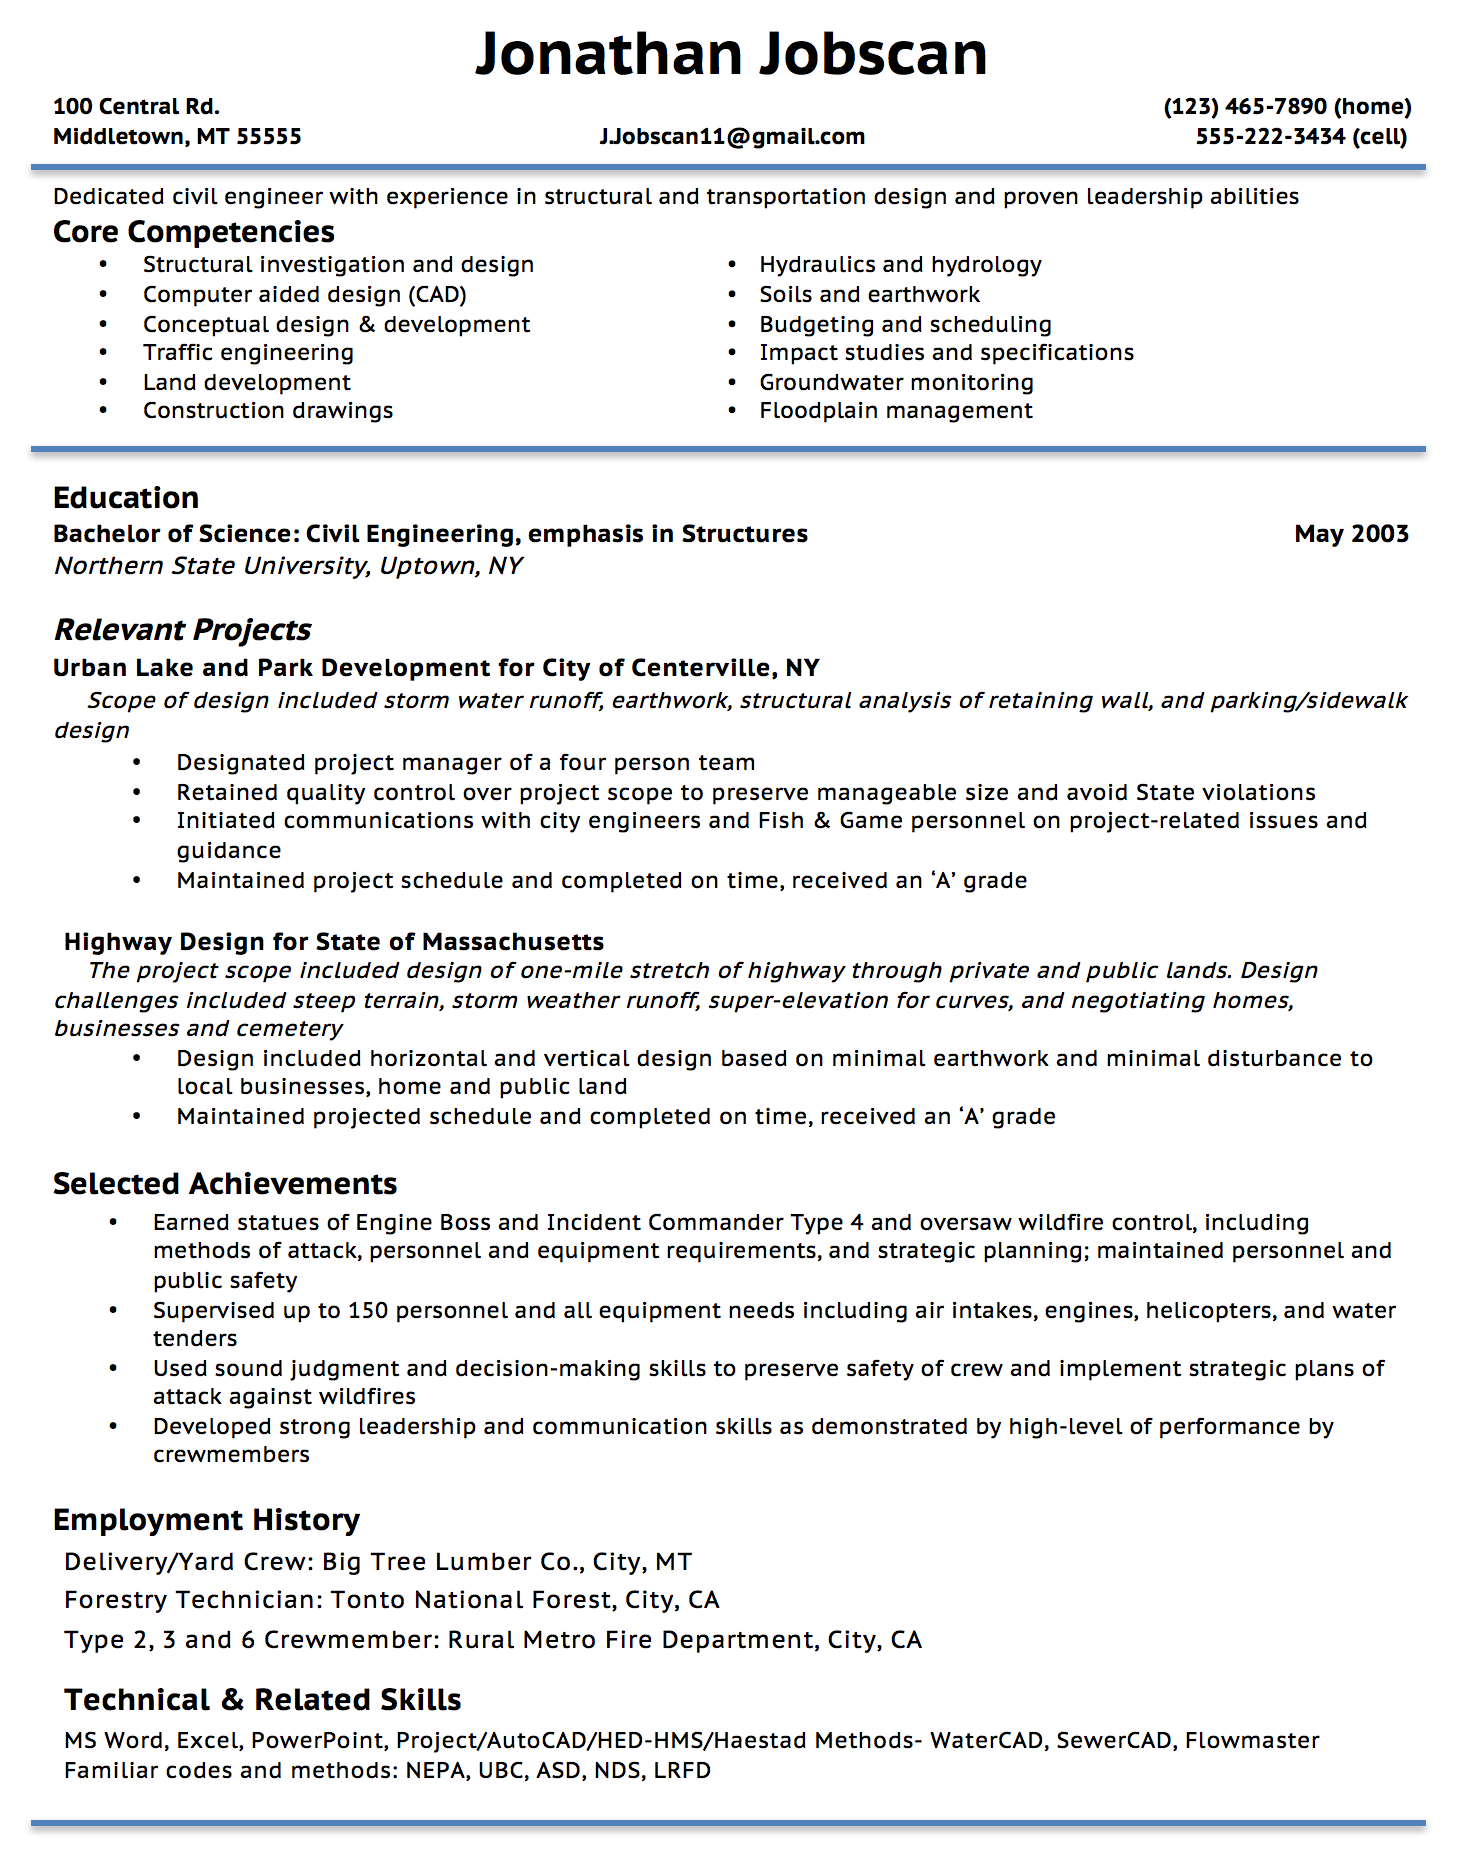 Opposenewapstandardsus  Winsome Resume Writing Guide  Jobscan With Fair Example Of A Functional Resume Format With Agreeable Work History On Resume Also Resume Engineer In Addition Resume For A Cook And Resume For Mcdonalds As Well As Etl Resume Additionally Digital Media Resume From Jobscanco With Opposenewapstandardsus  Fair Resume Writing Guide  Jobscan With Agreeable Example Of A Functional Resume Format And Winsome Work History On Resume Also Resume Engineer In Addition Resume For A Cook From Jobscanco